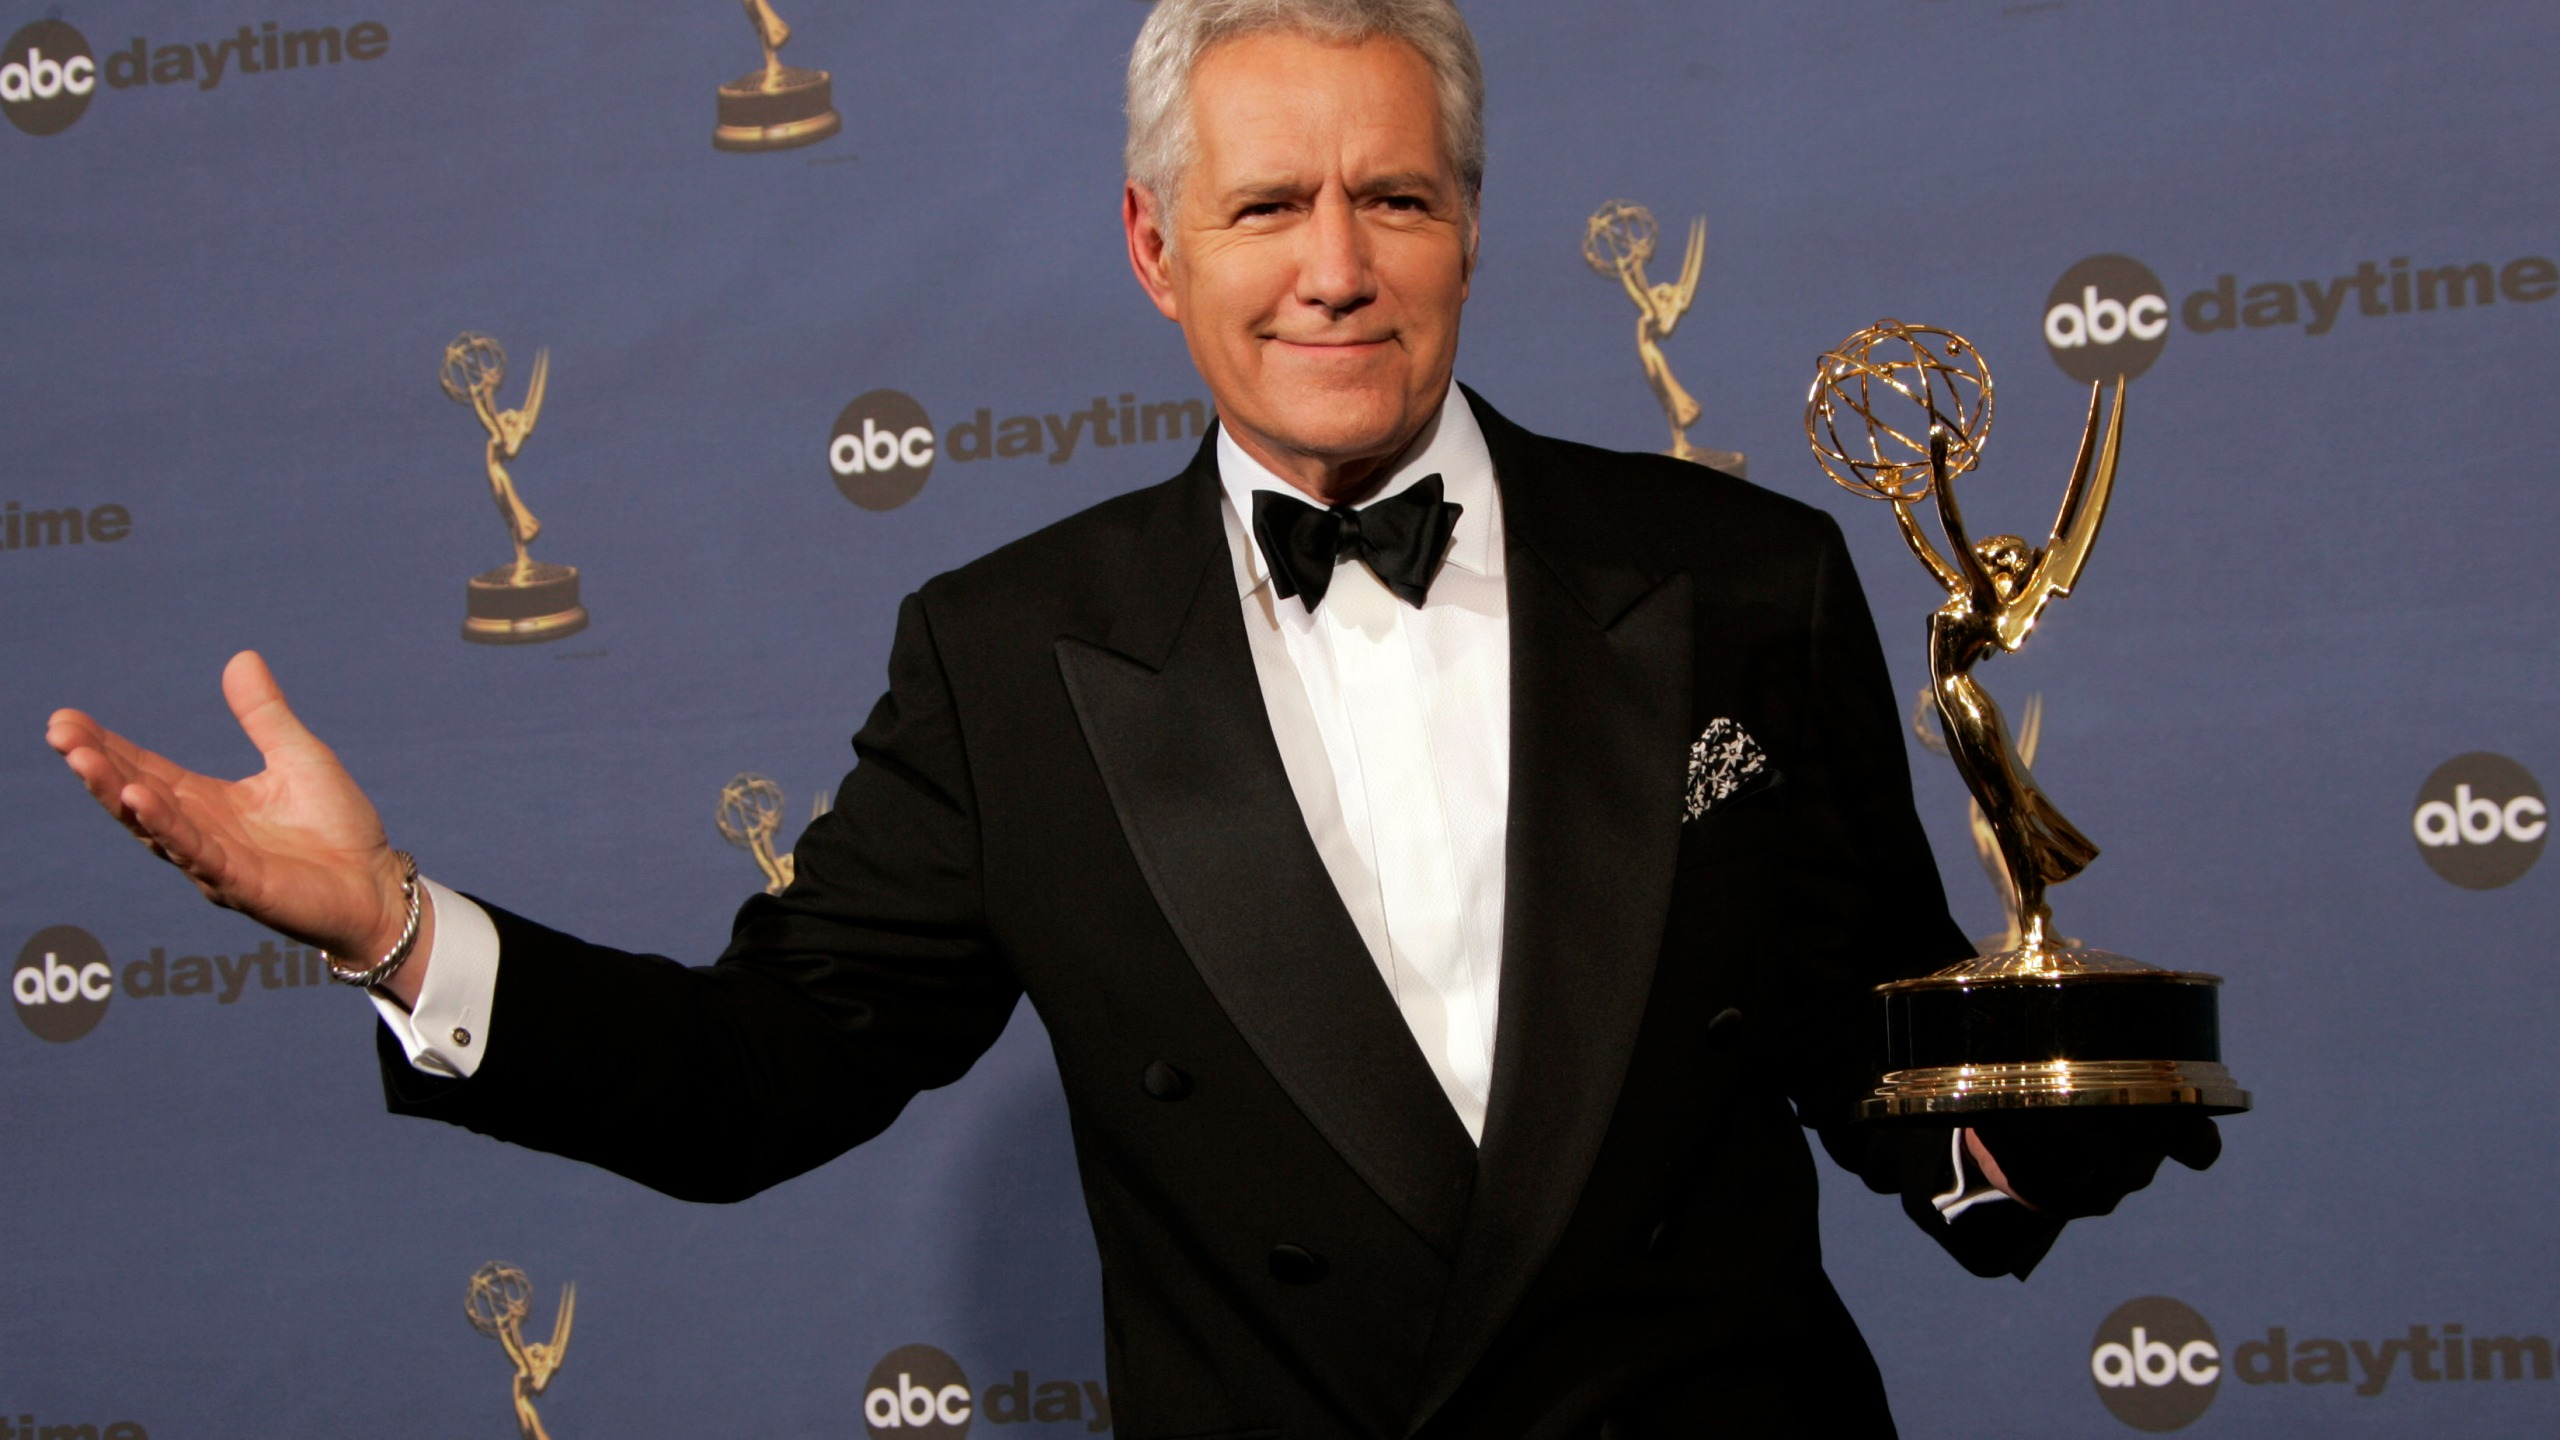 """In this Friday, April 28, 2006, file photo, Alex Trebek holds the award for outstanding game show host, for his work on """"Jeopardy!"""" backstage at the 33rd Annual Daytime Emmy Awards in Los Angeles. Sony Television spokeswoman Paula Askanas said Sunday, June 24, 2012, that Trebek is in a Los Angeles hospital recovering from a mild heart attack. (AP Photo/Reed Saxon, File)"""